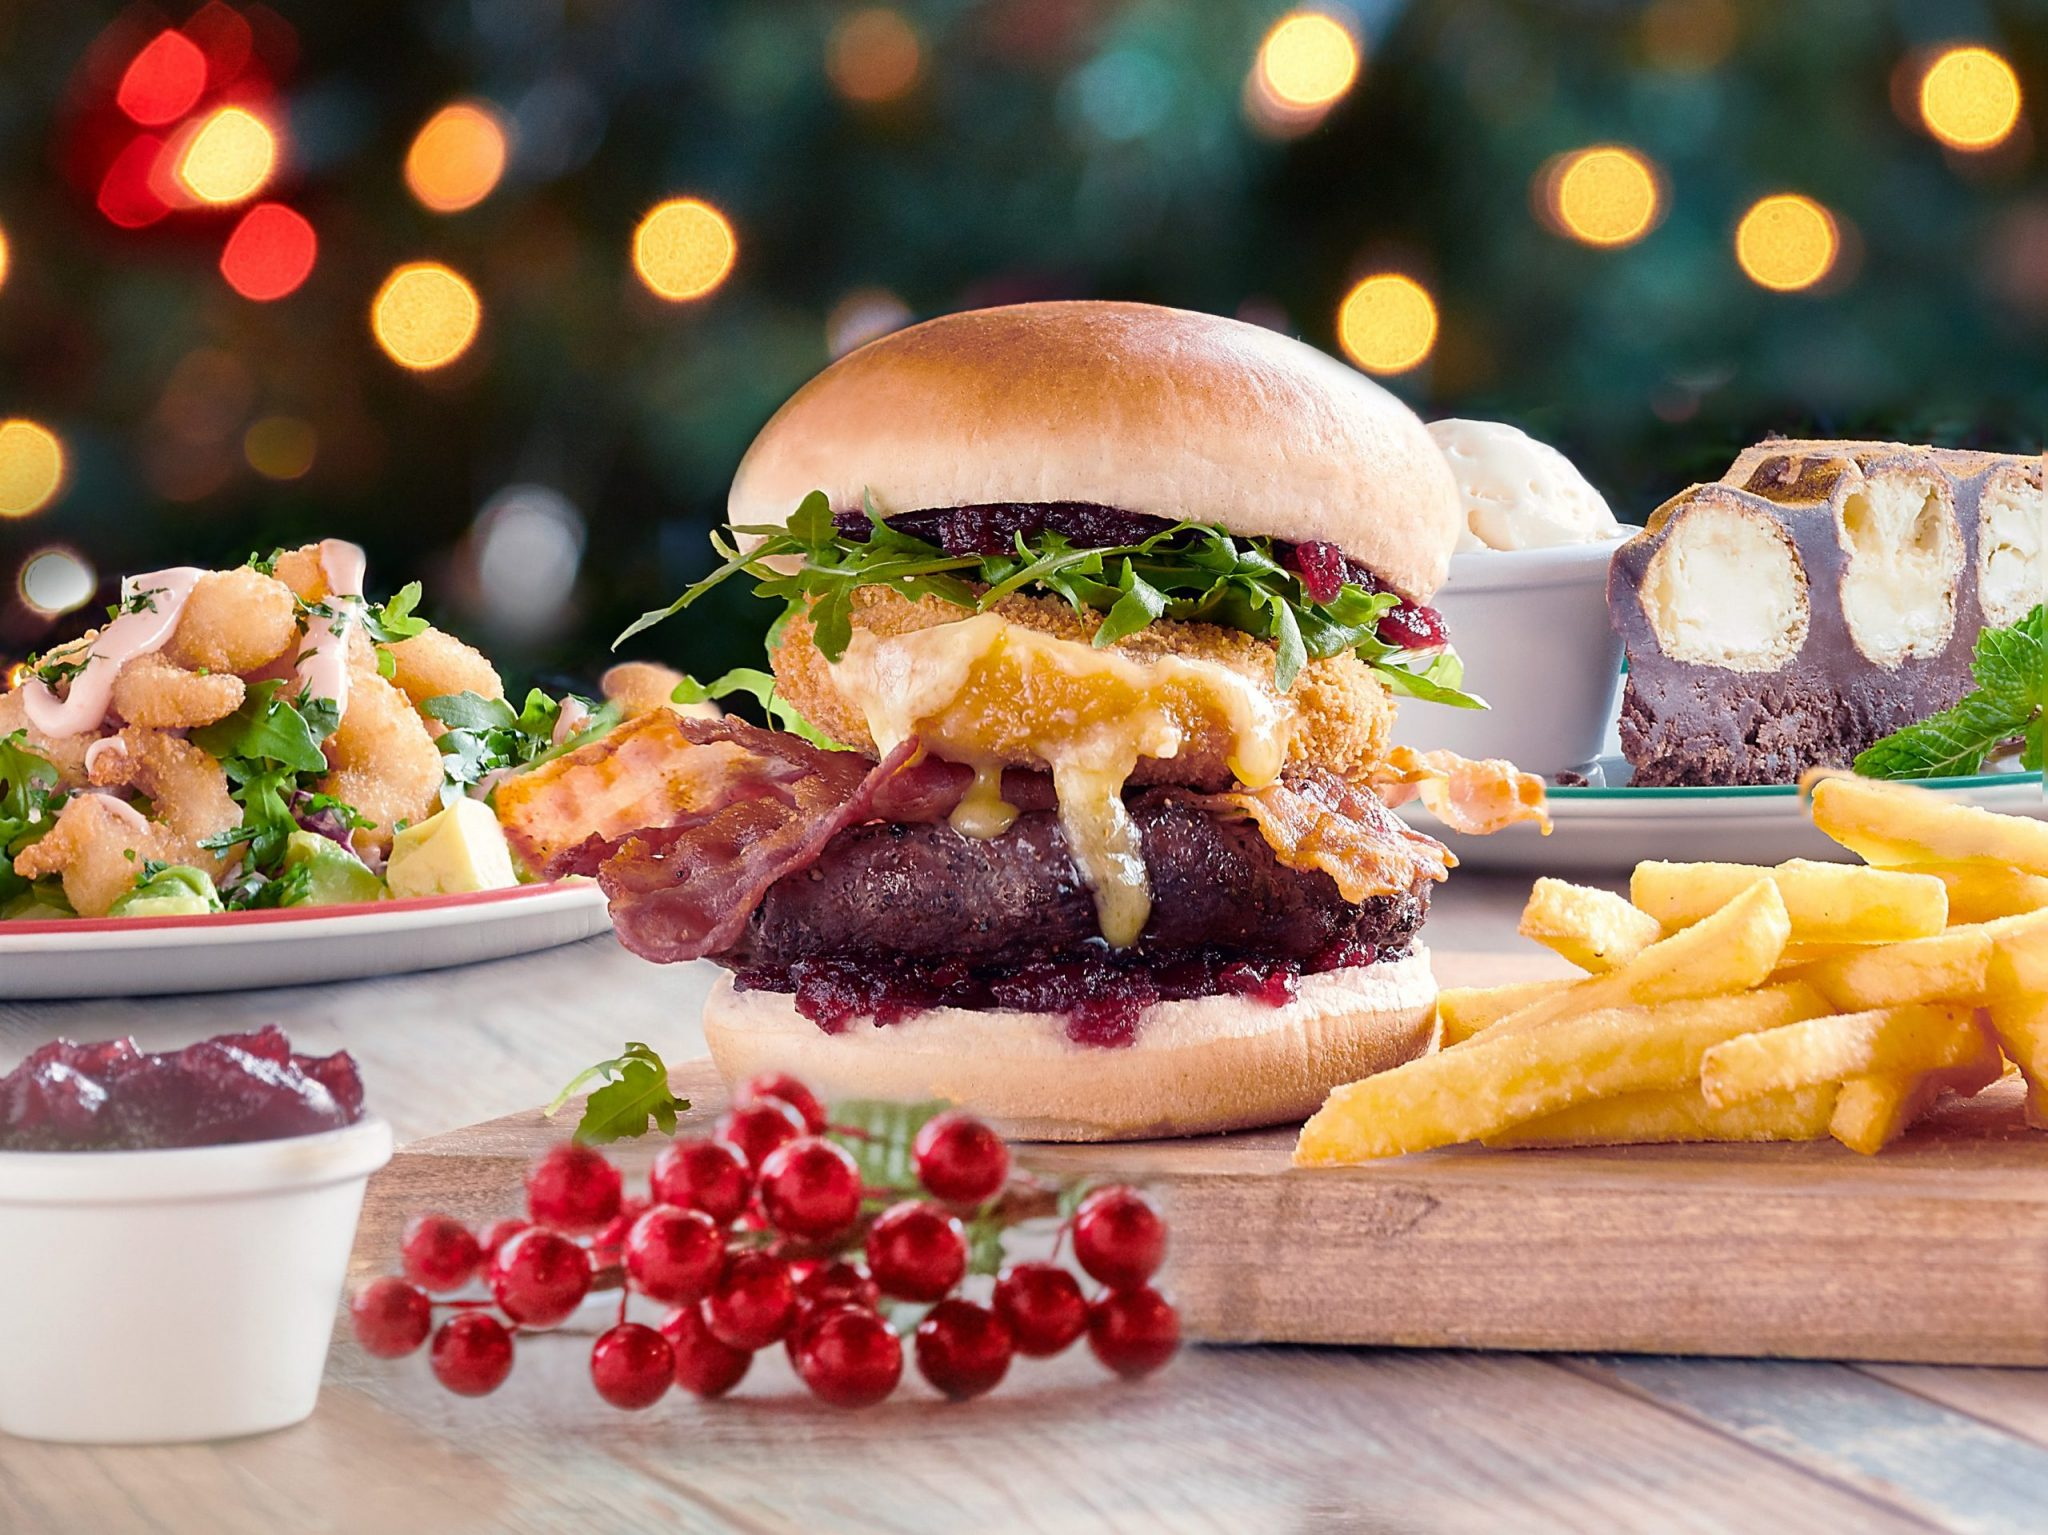 Frankie & Benny's Brie and Cranberry Burger